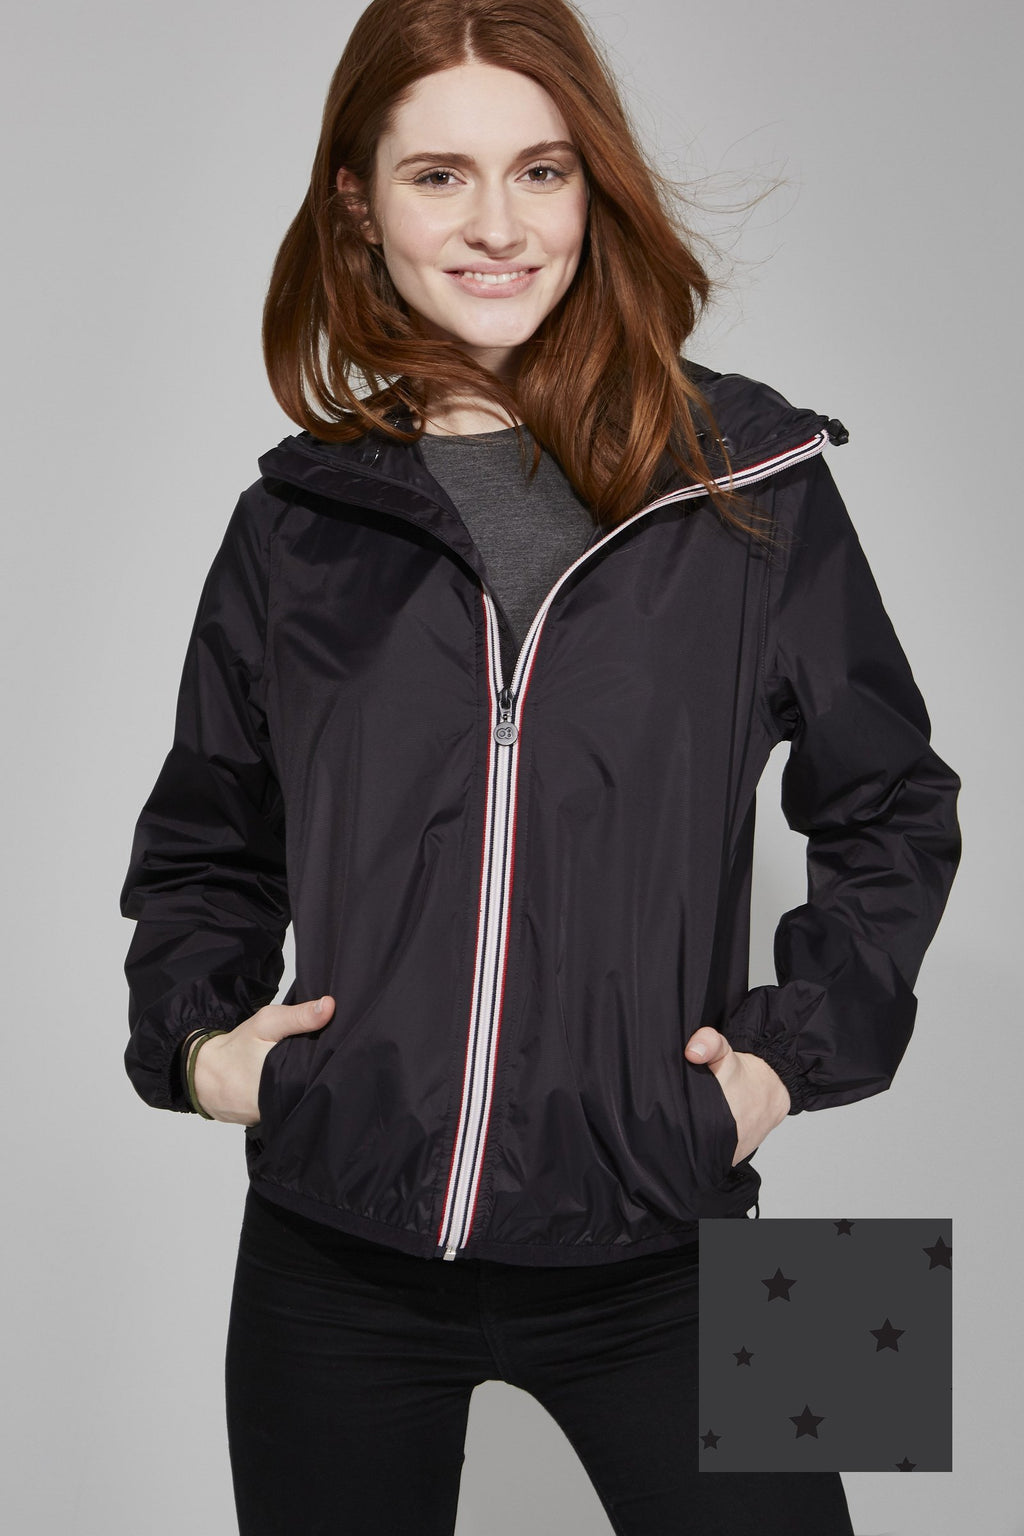 Sloane - Gloss Stars Black Full Zip Packable Rain Jacket